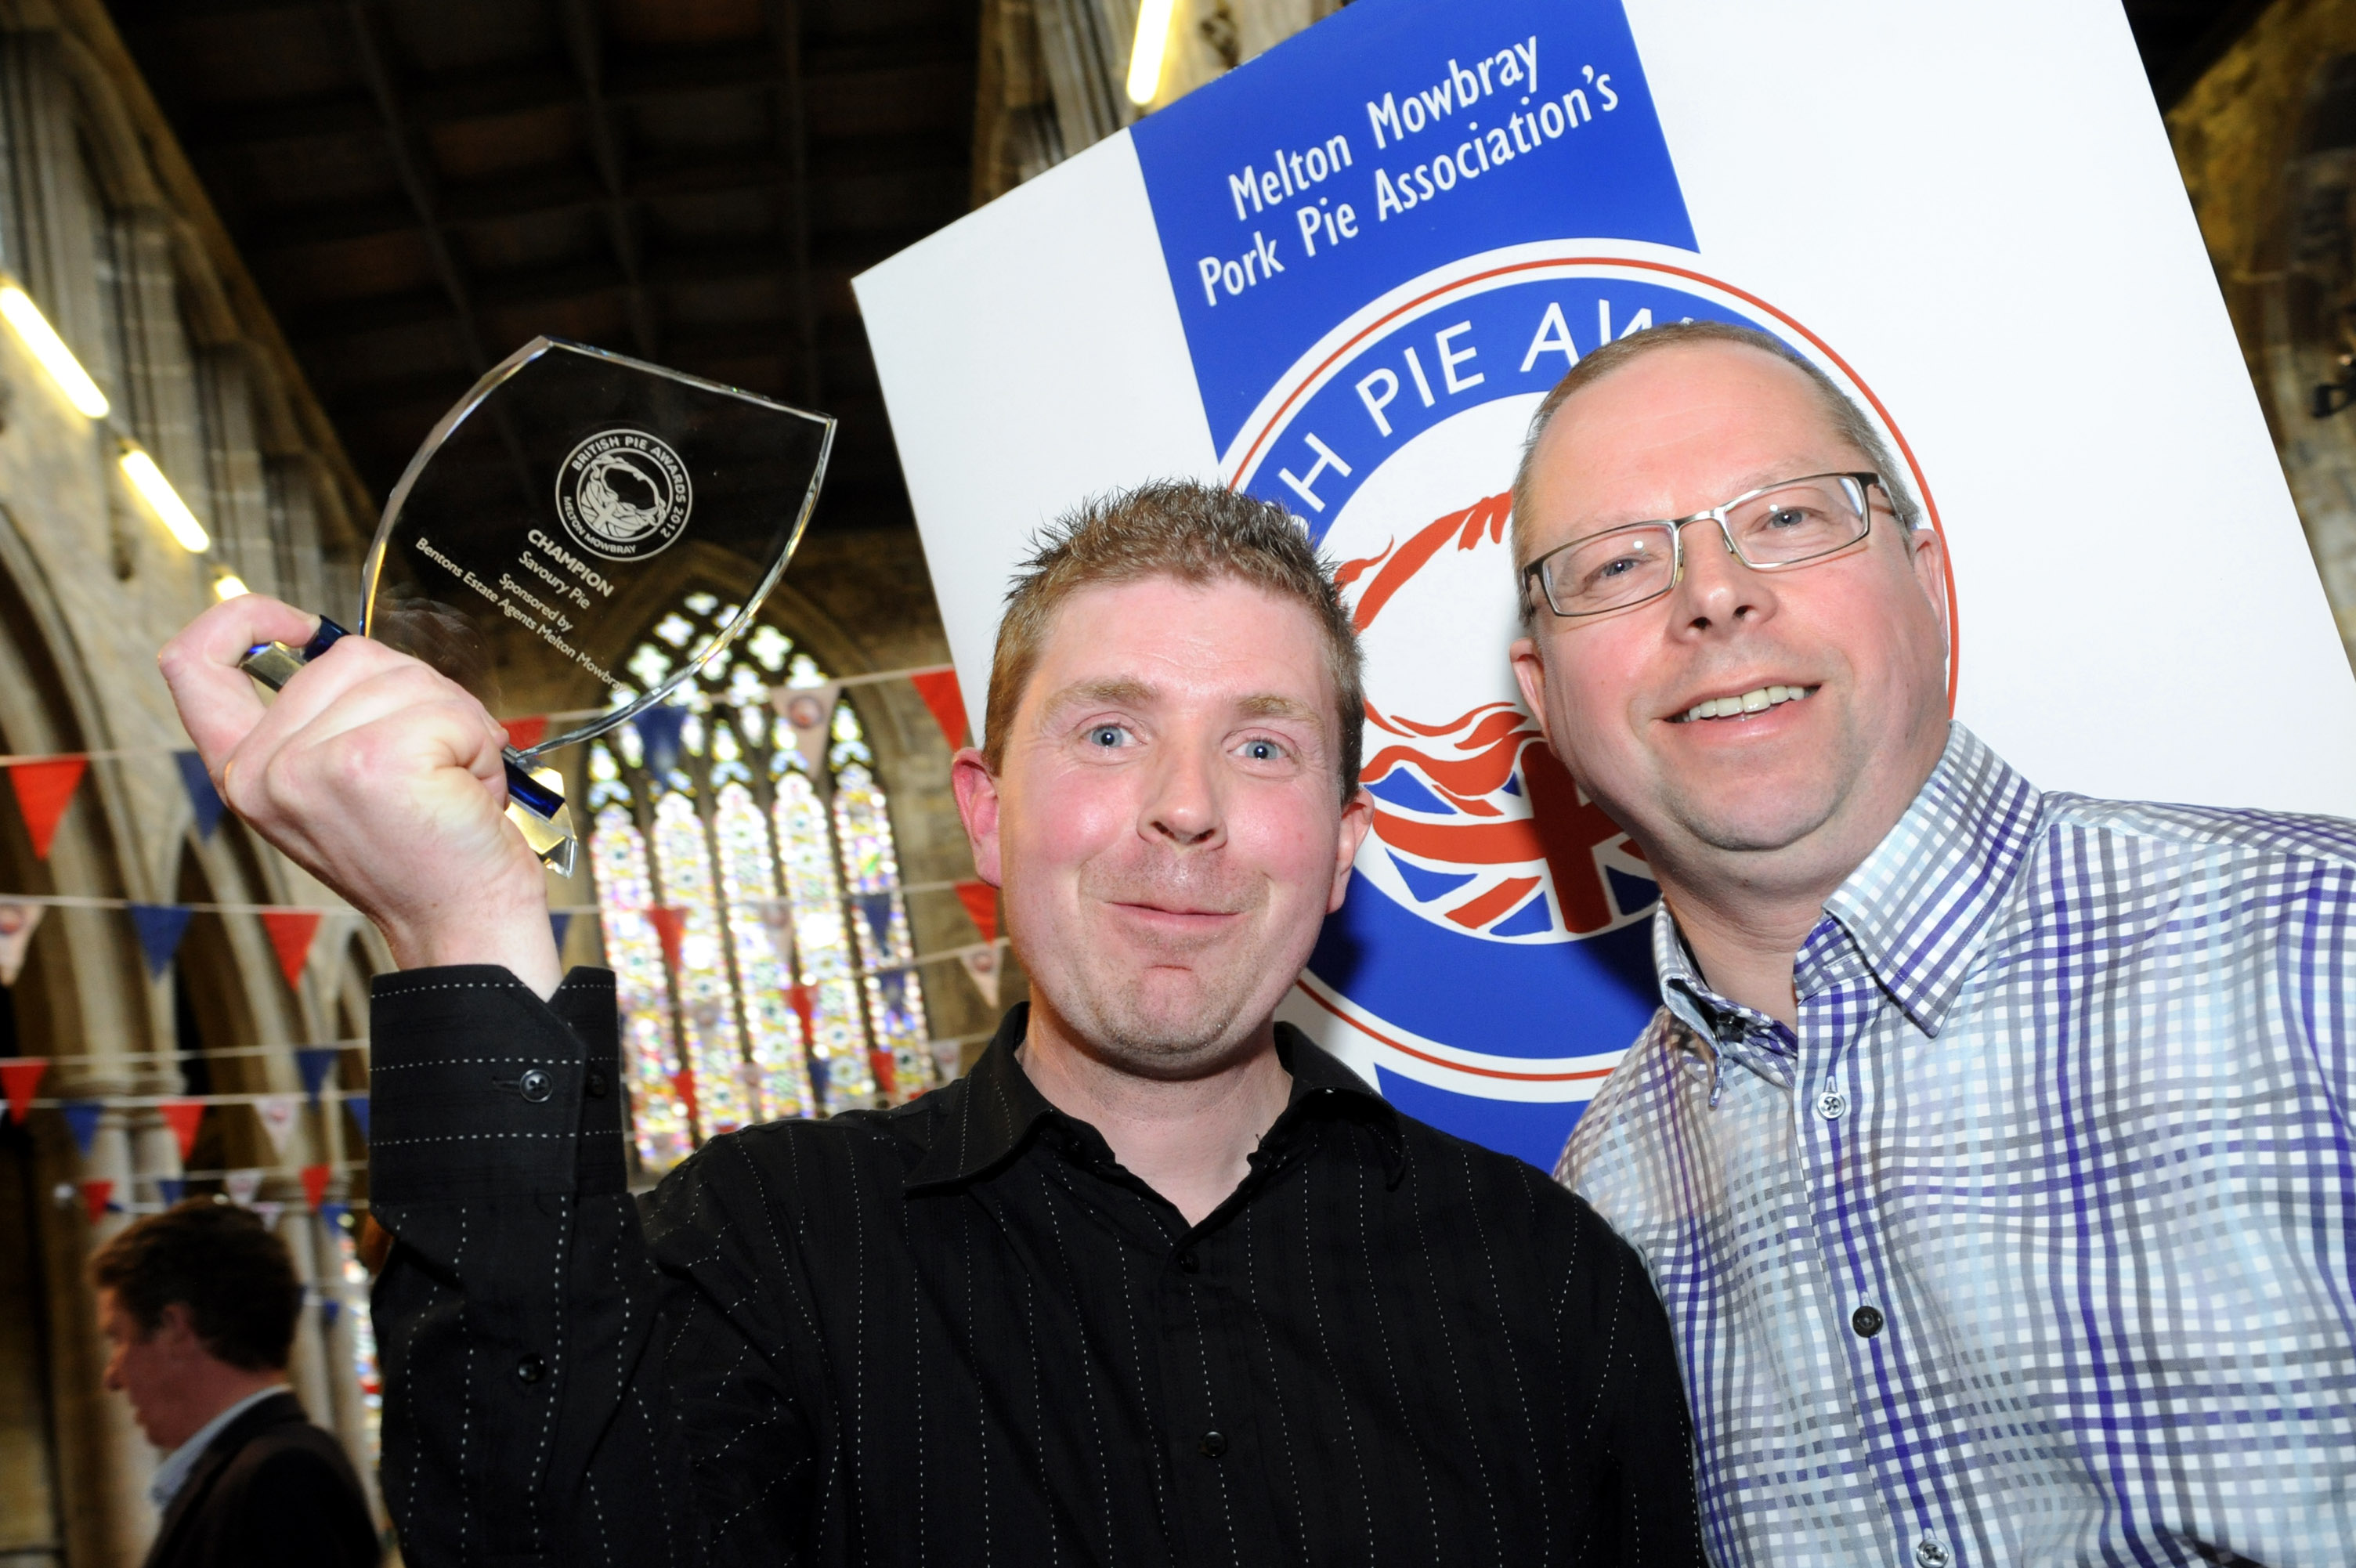 2012 British Pie Awards 611